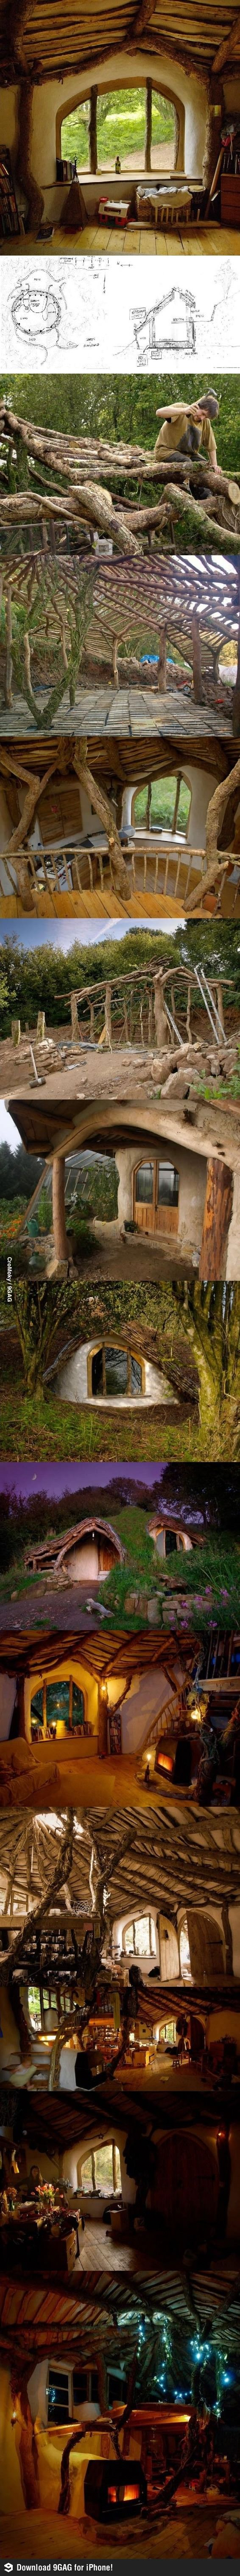 Lorie Lawhorn *******  How to build a Hobbit house....... I think you and I could build this,  on a good day. :^)